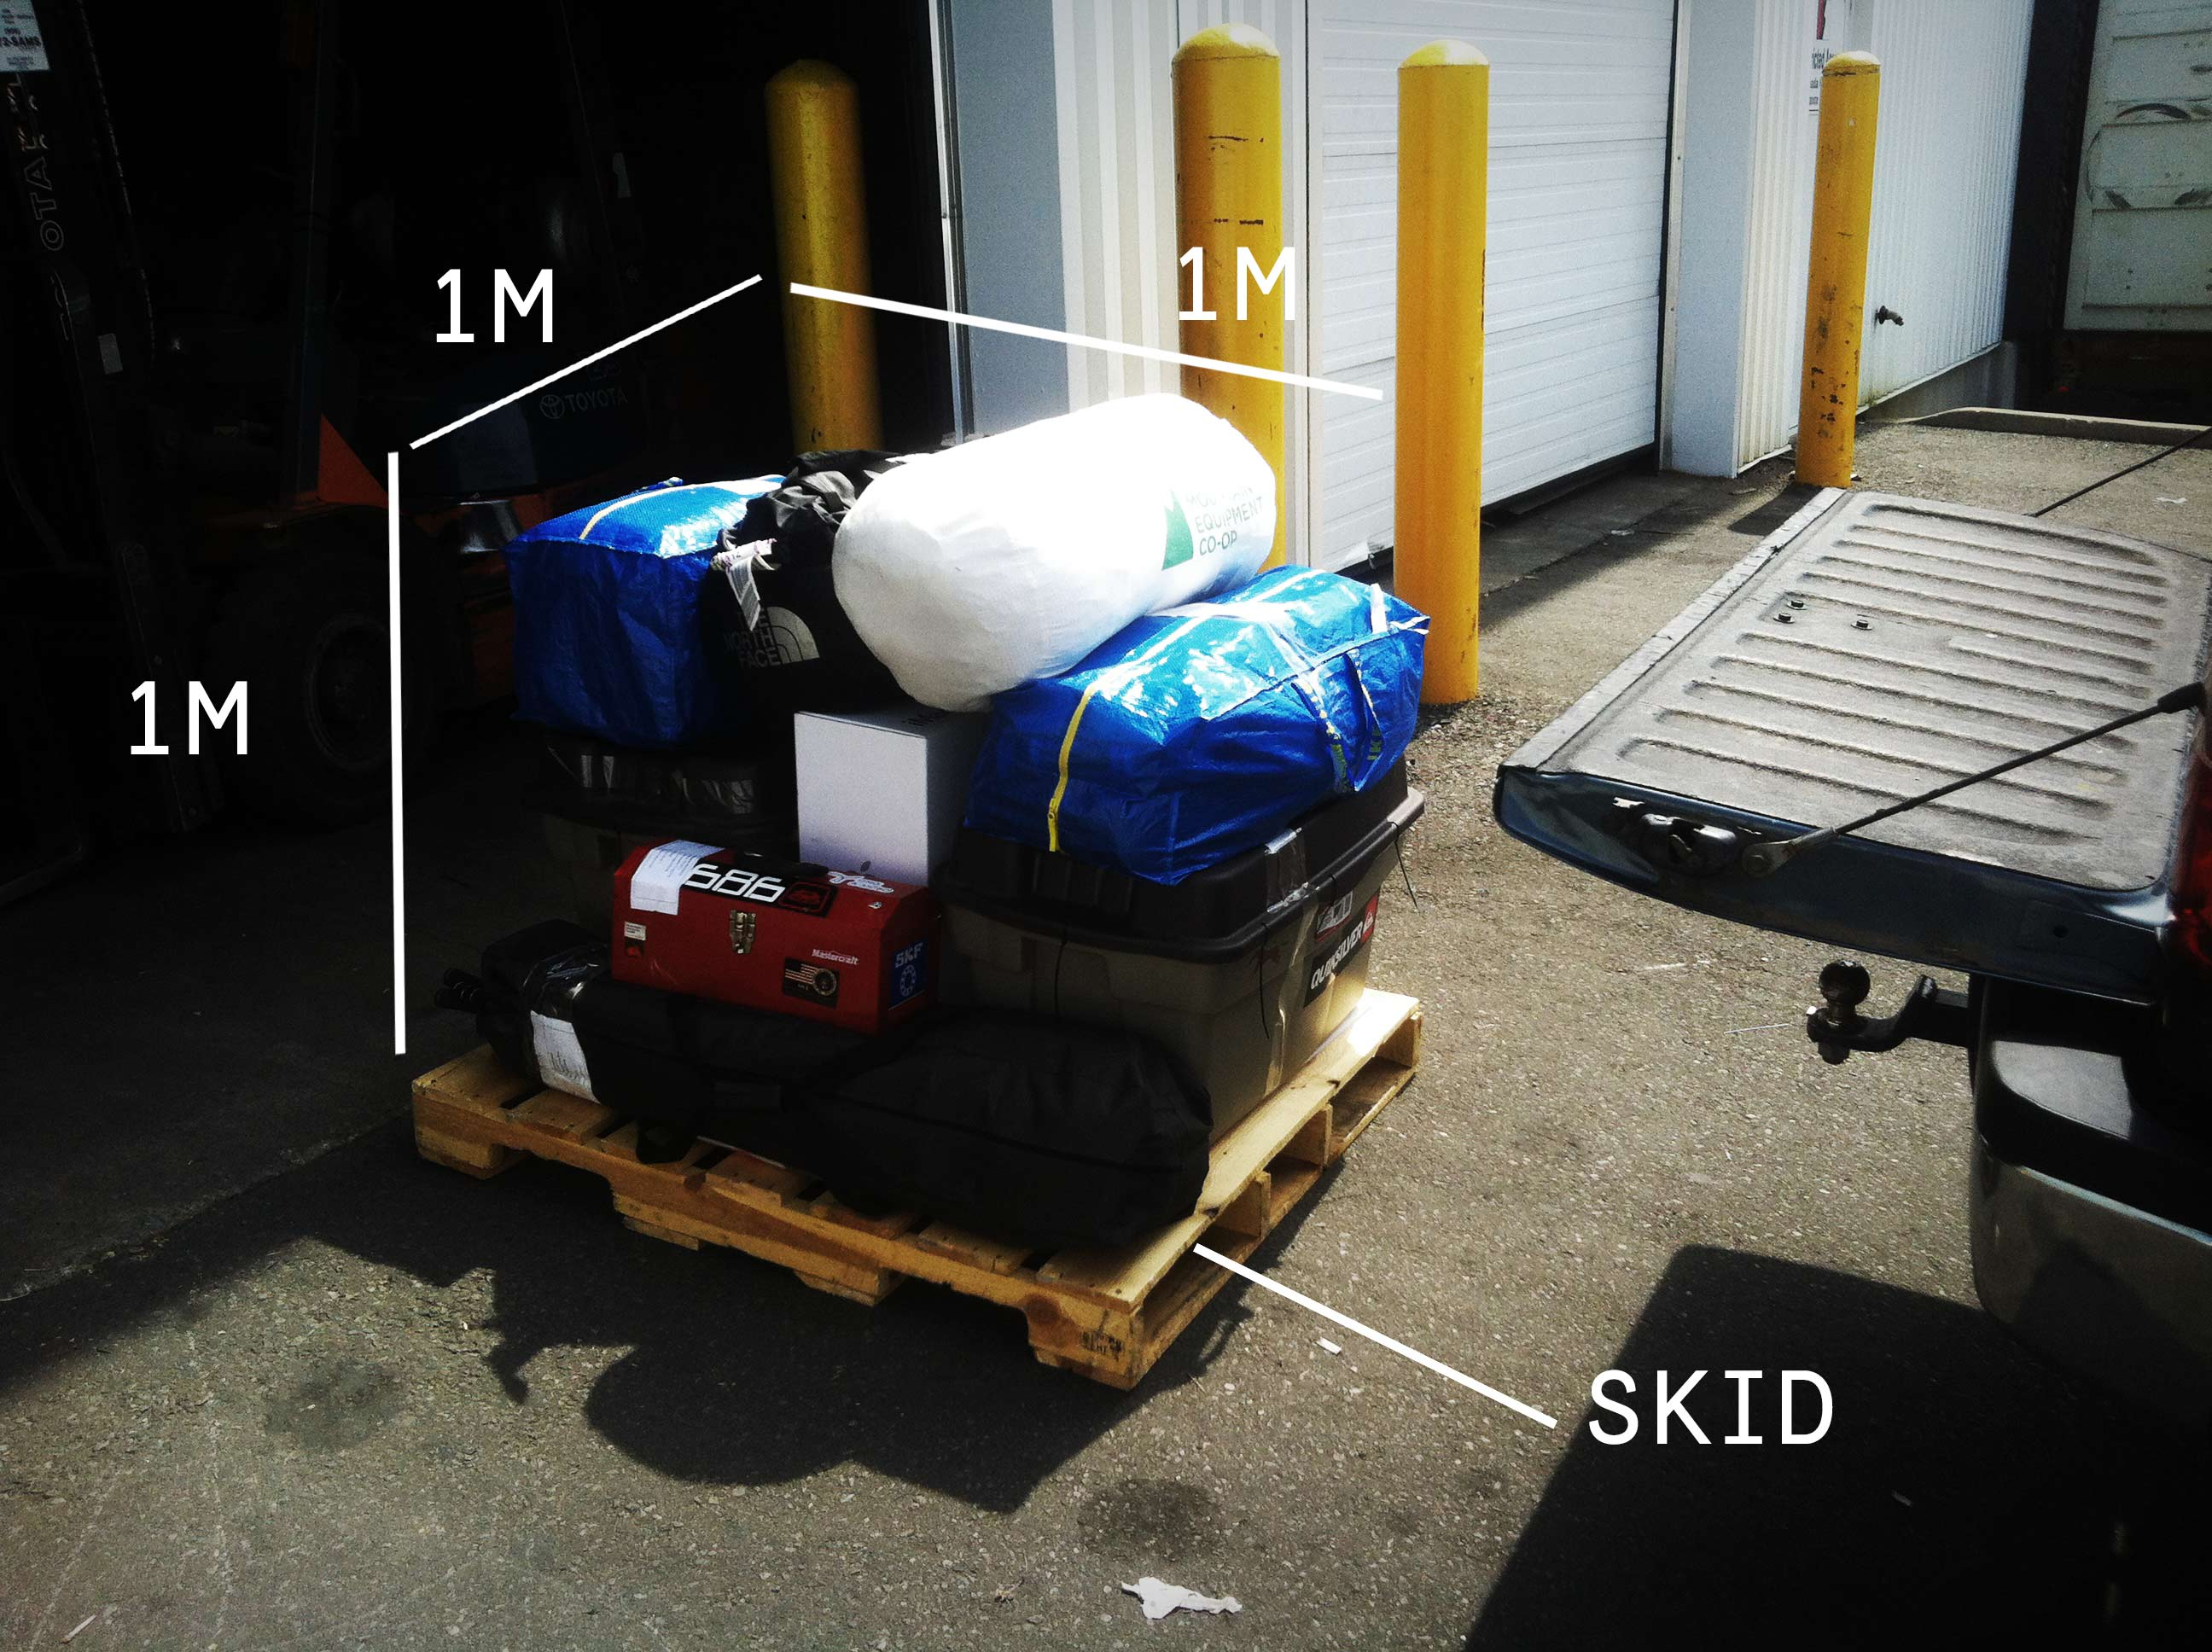 Moving to Sweden with Less-than-Container-Load Freight   Study in